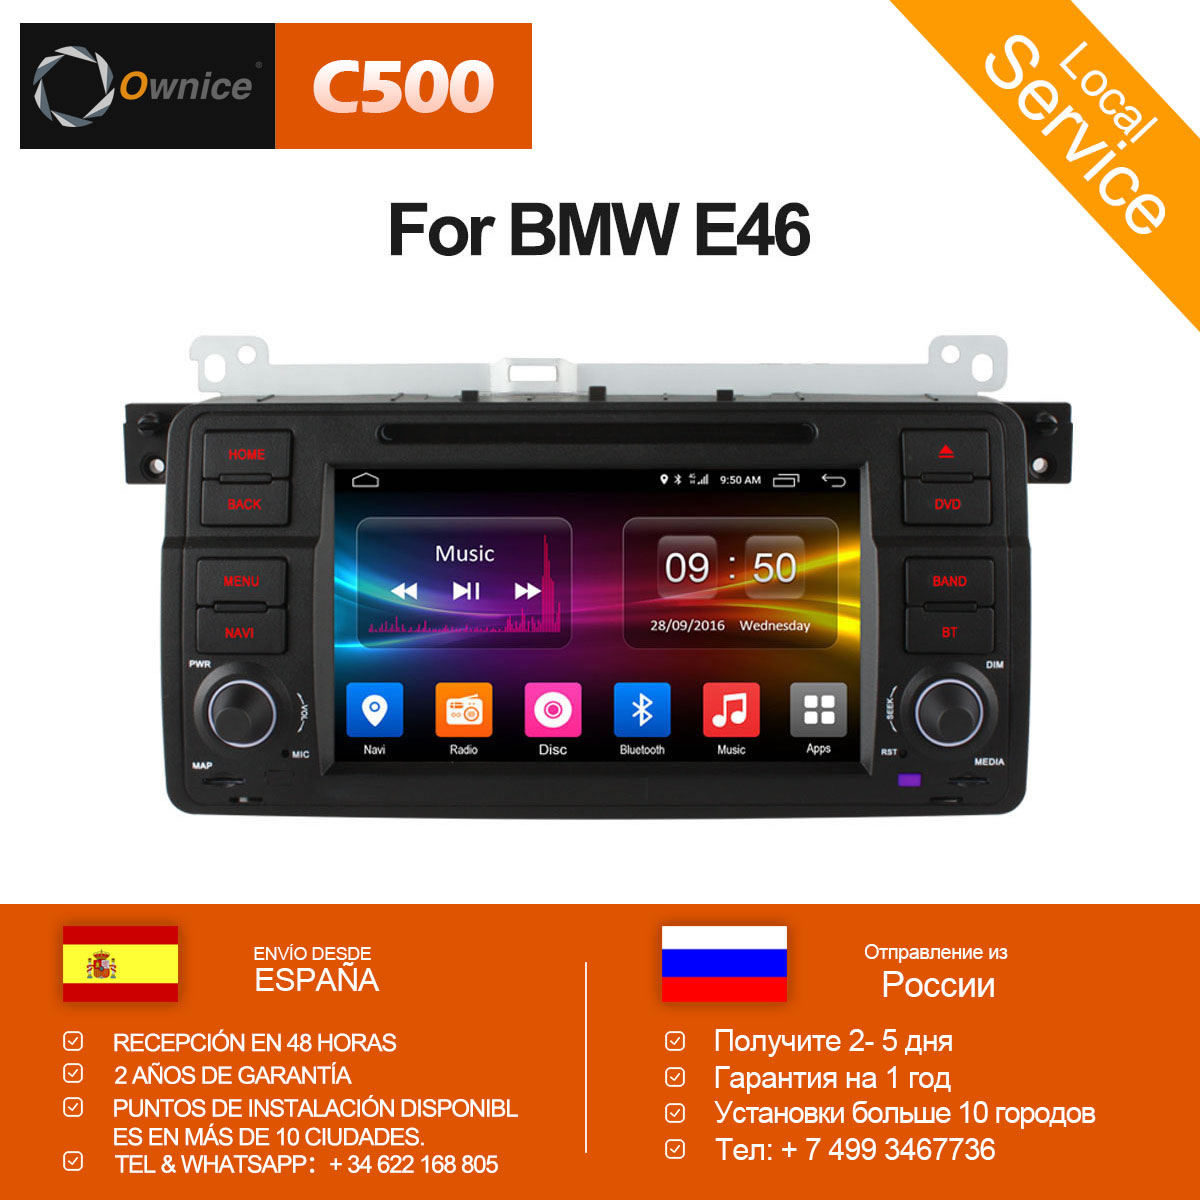 Ownice C500 Android 6.0 Octa 8 Core for bmw E46 M3 car dvd gps navi wifi 4G BT Radio RDS 2GB RAM 32GB ROM support DAB+ TPMS цены